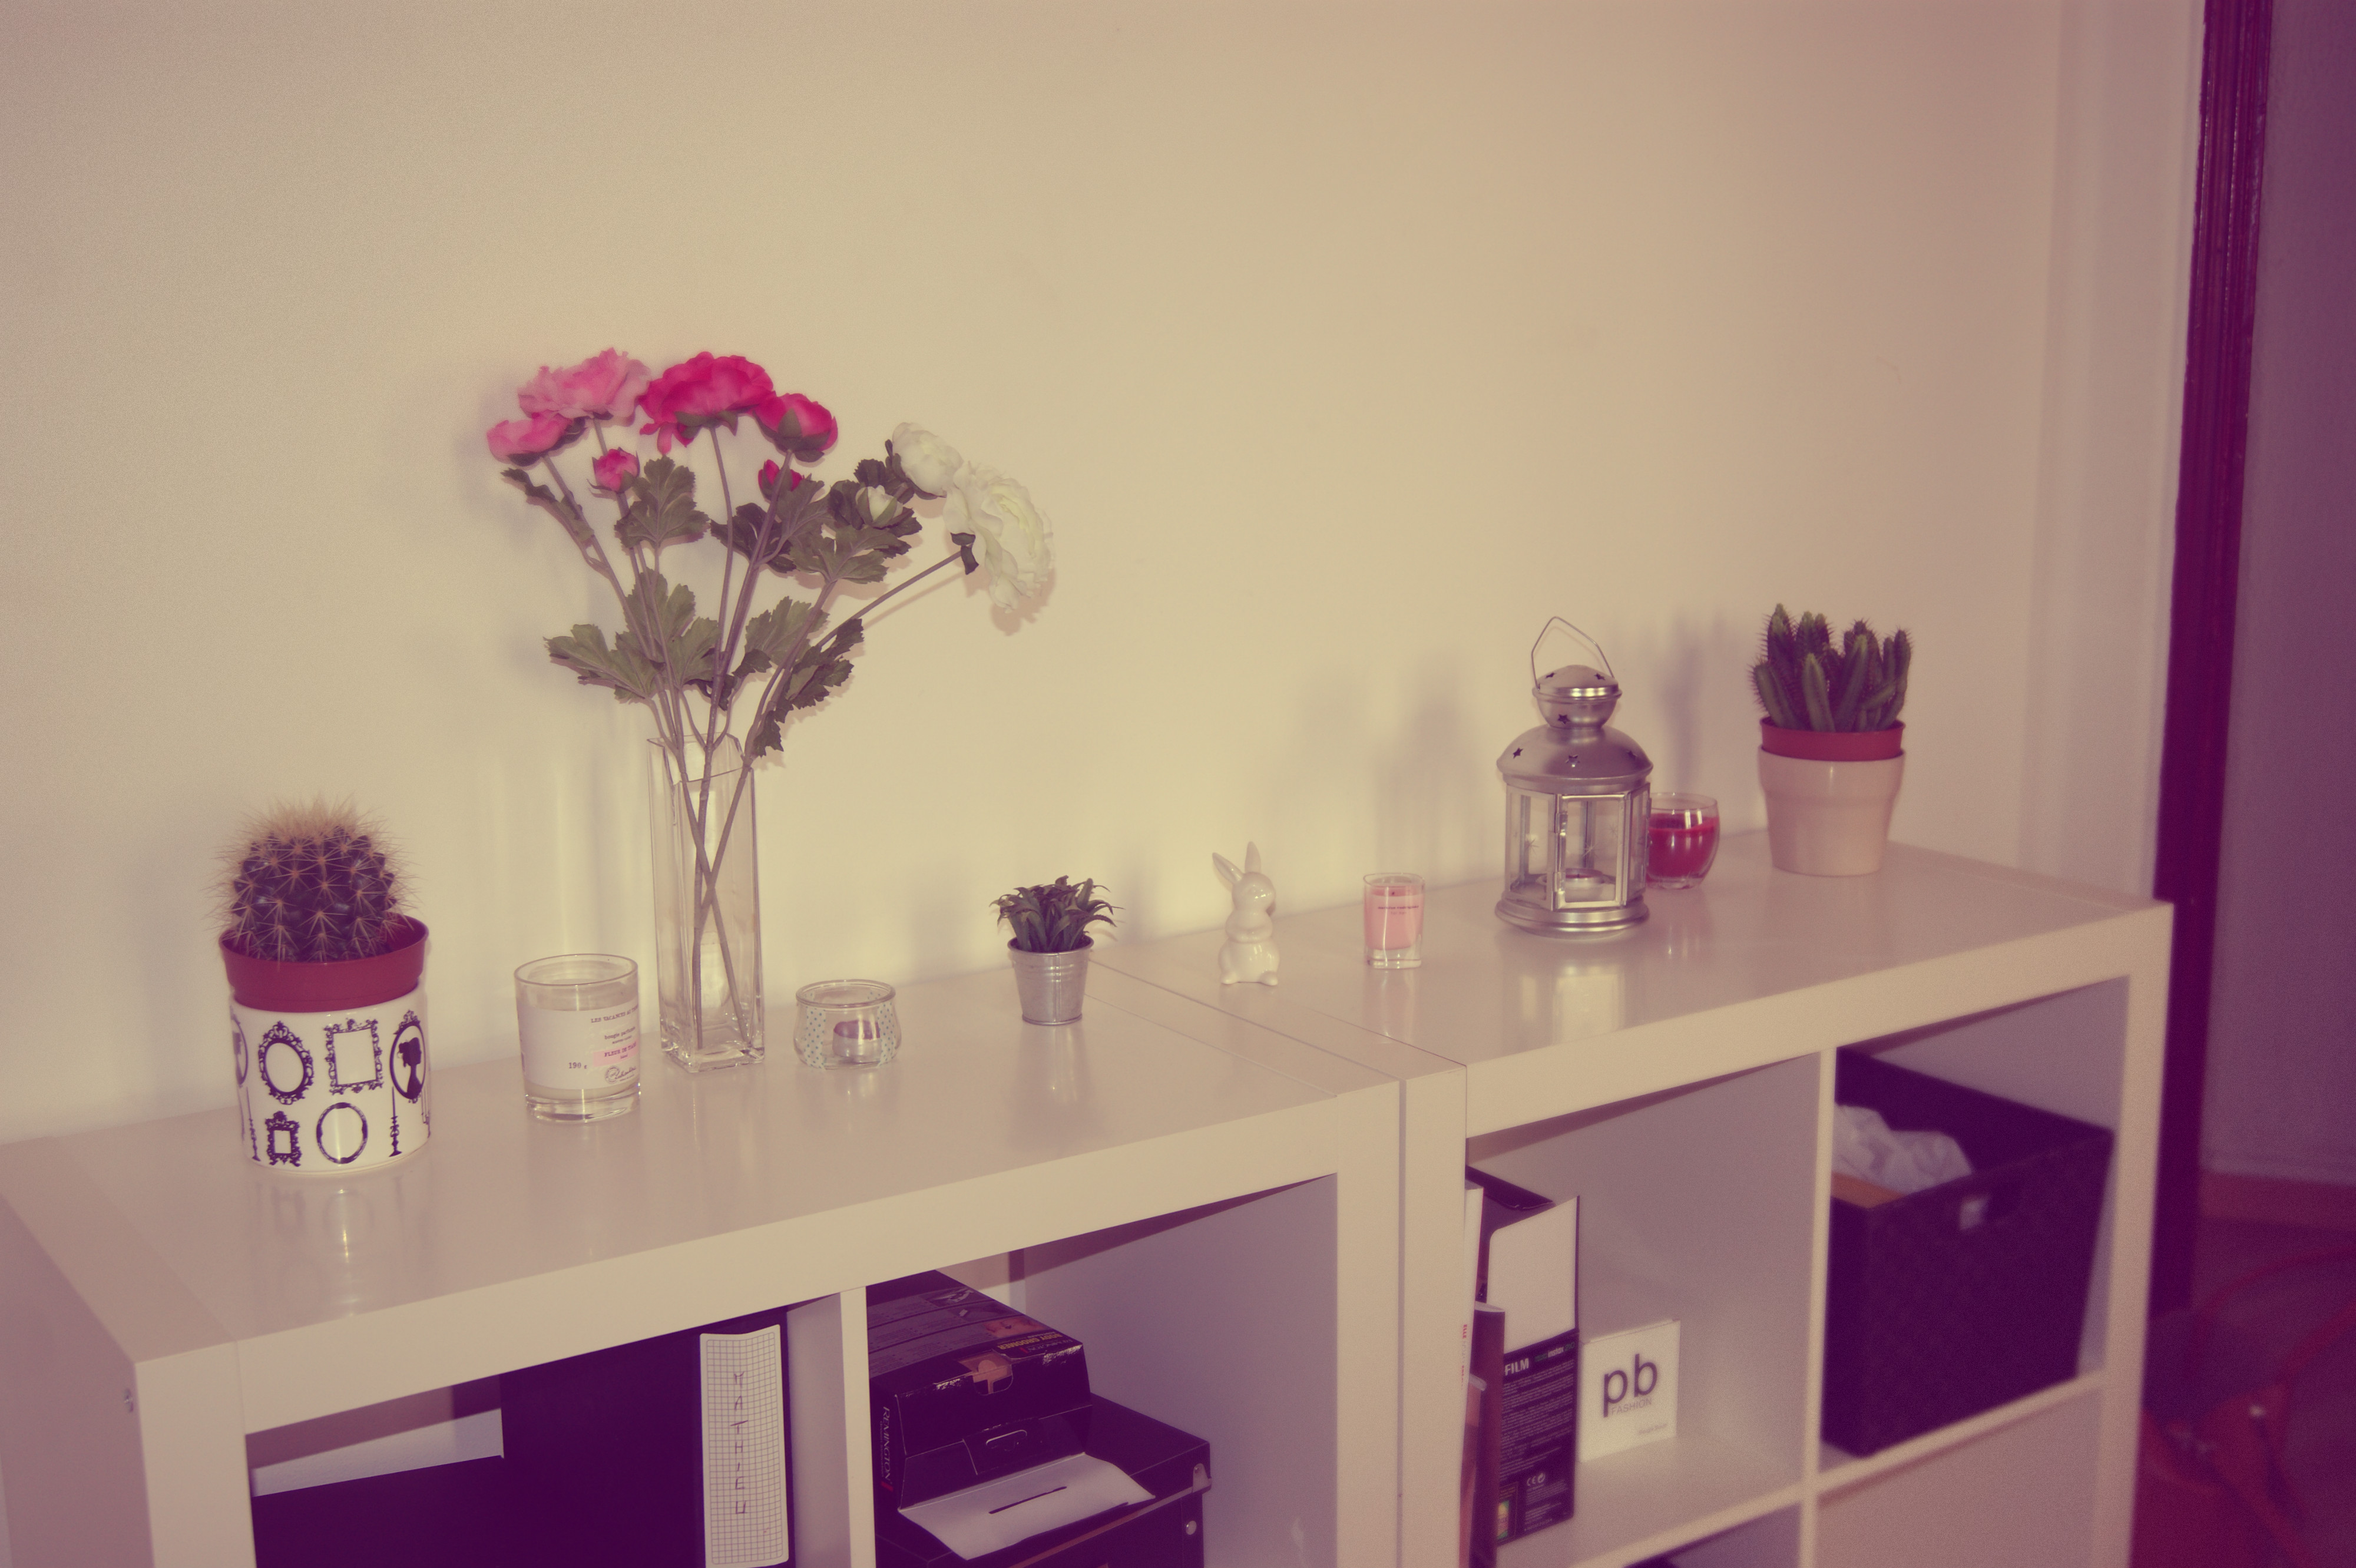 Ikea Deco Petite Déco Girly Le So Girly Blog